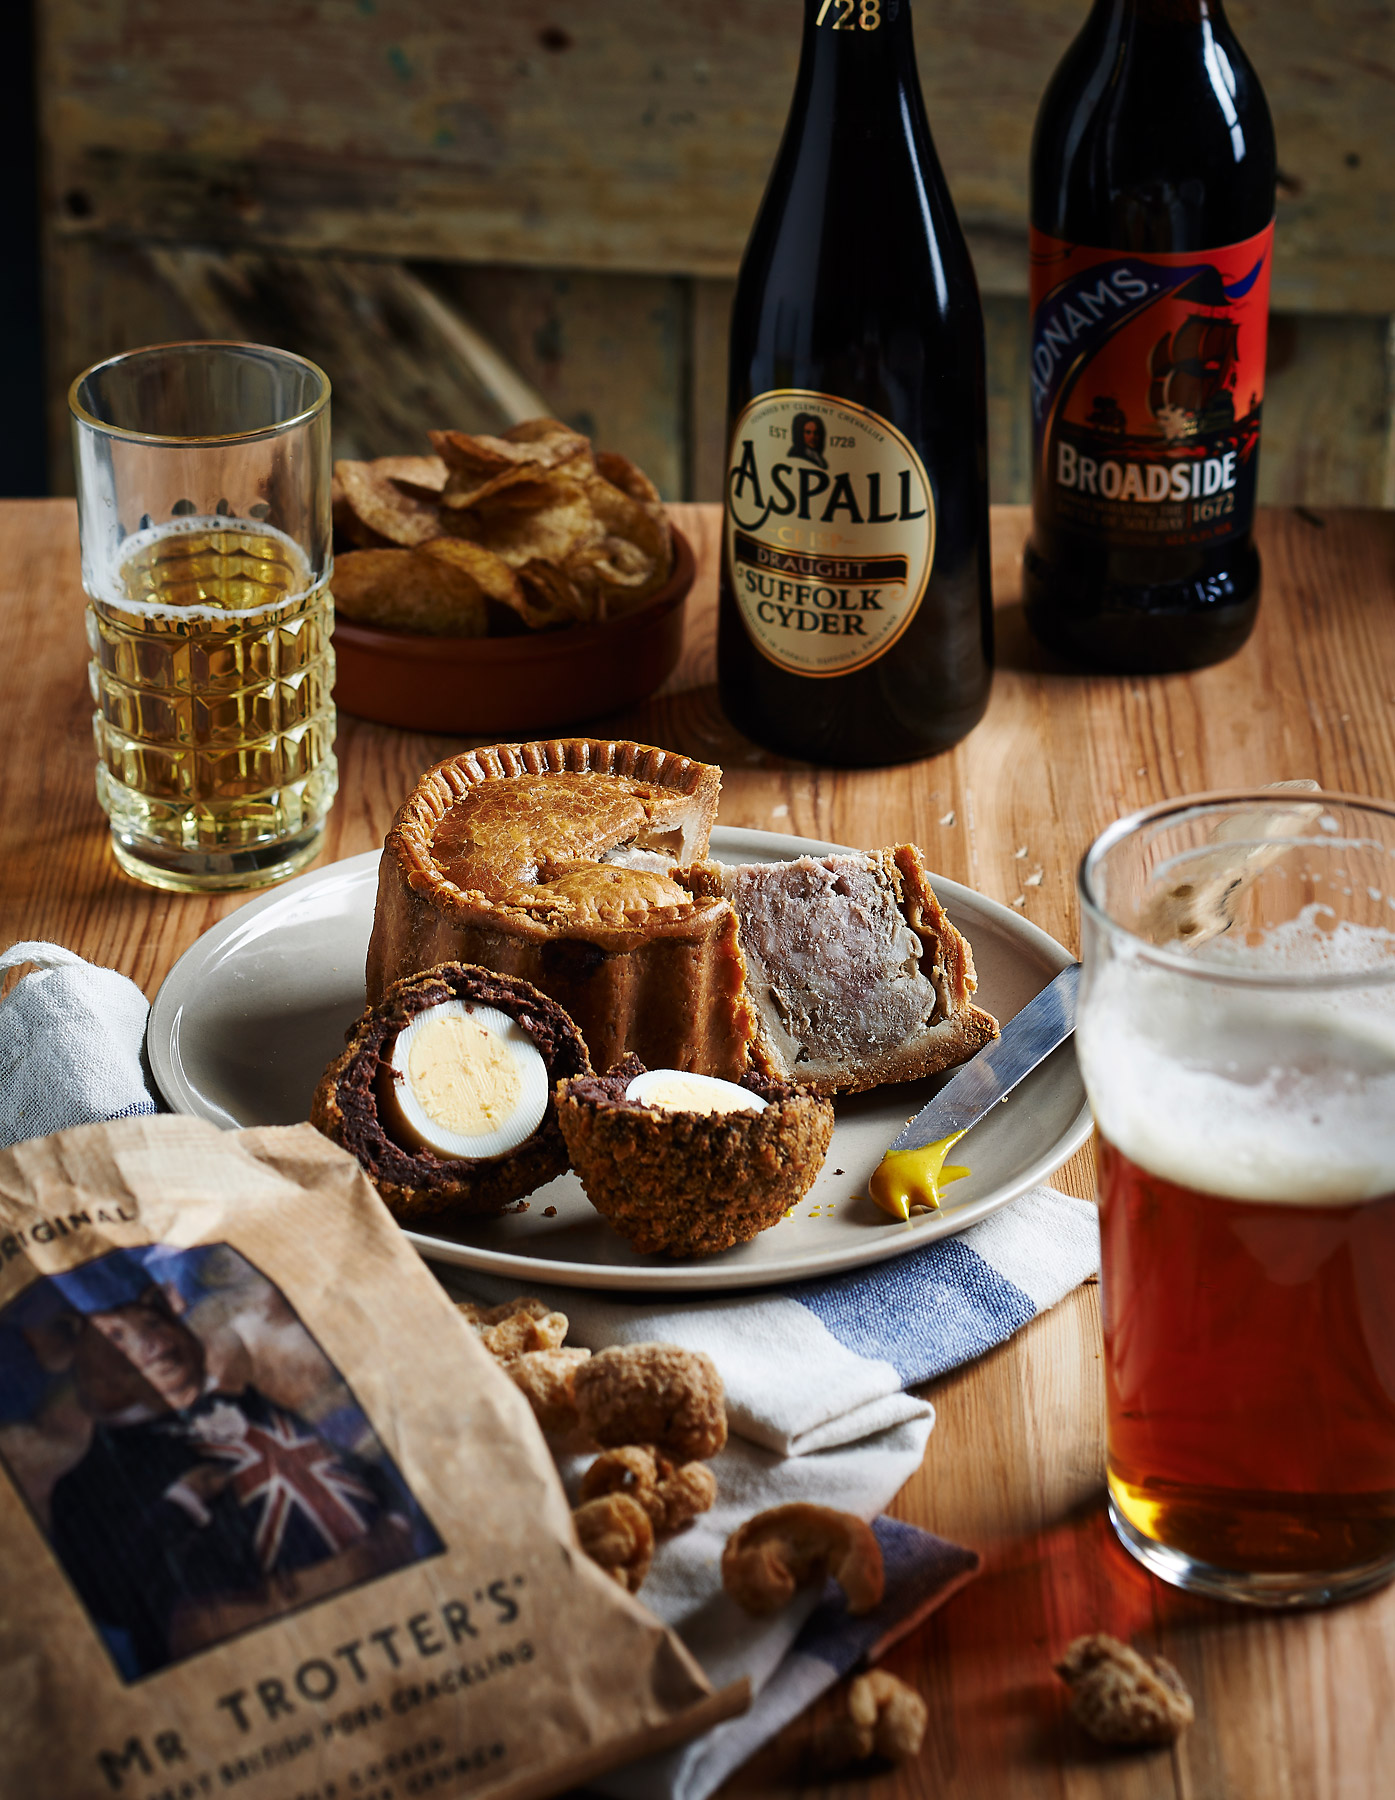 Pub table with beer, cider, pork pie and crisps